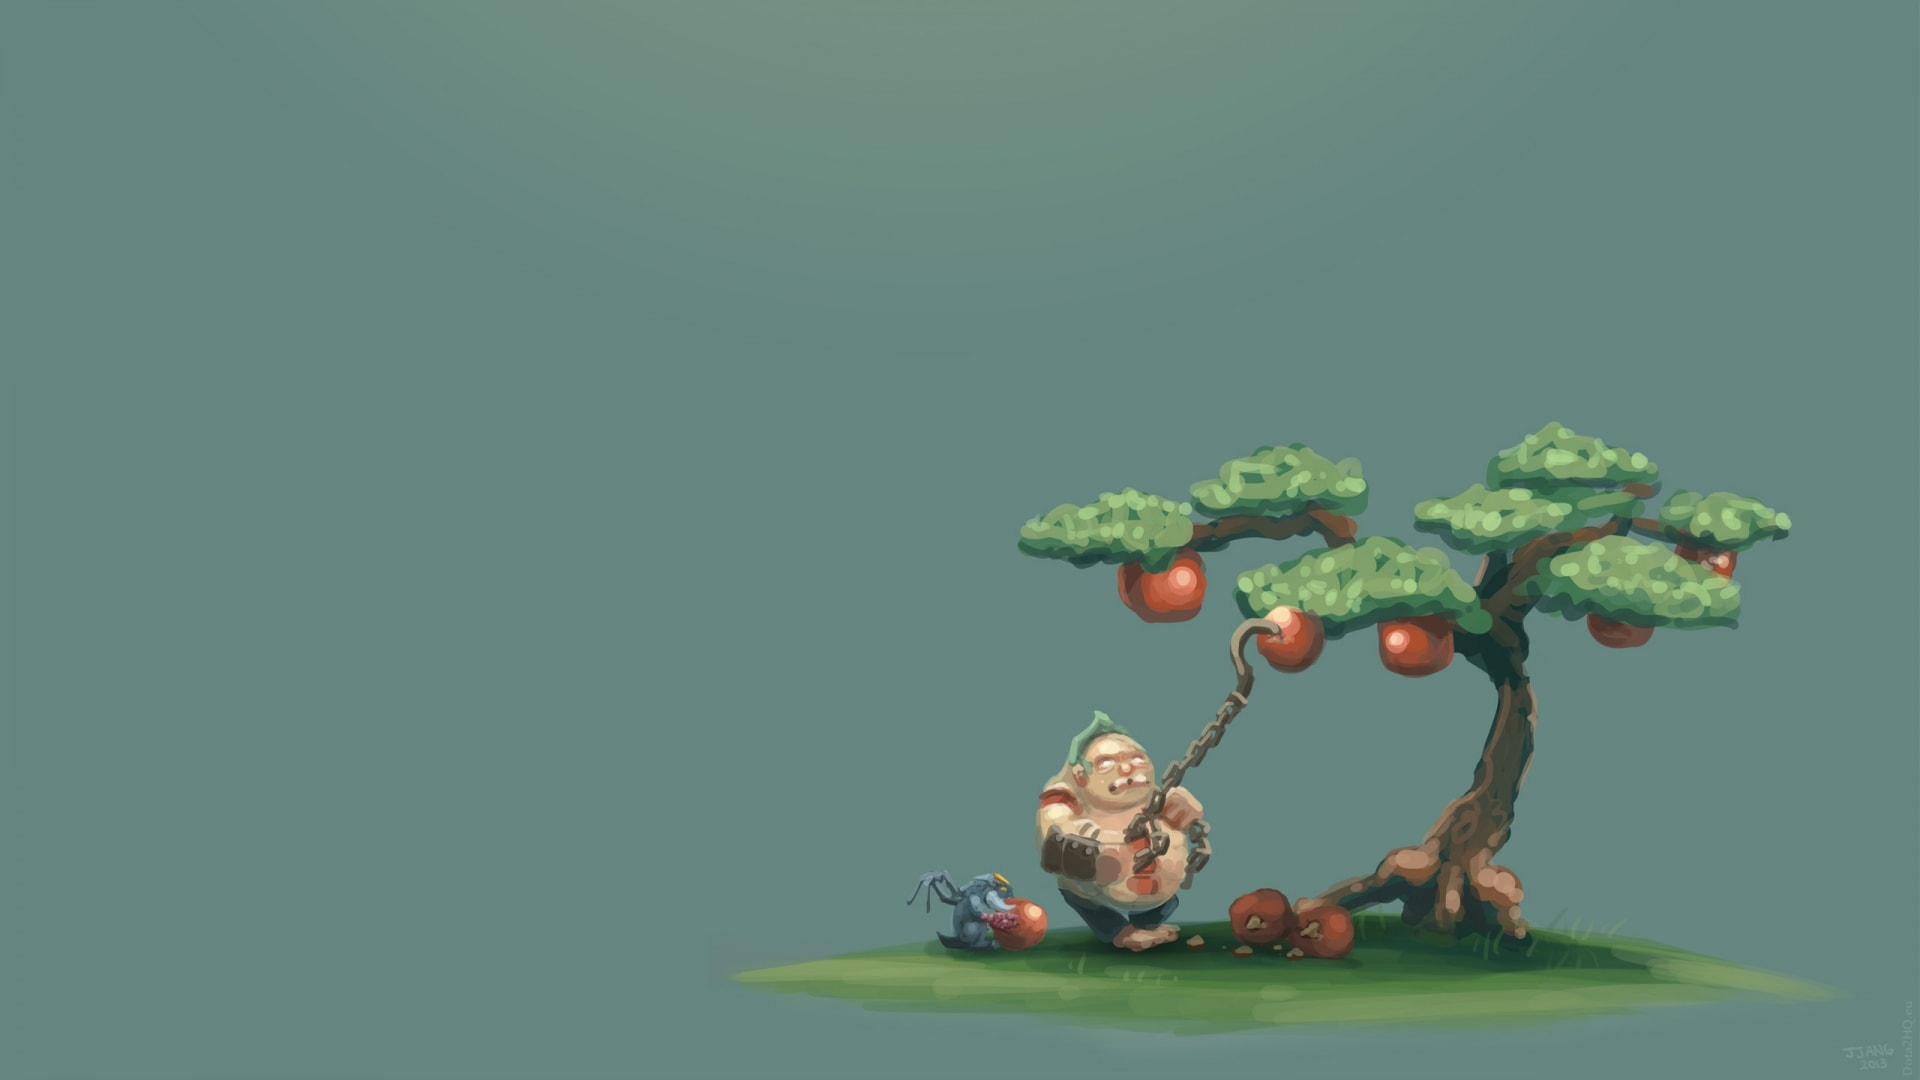 Dota2 : Pudge widescreen wallpapers